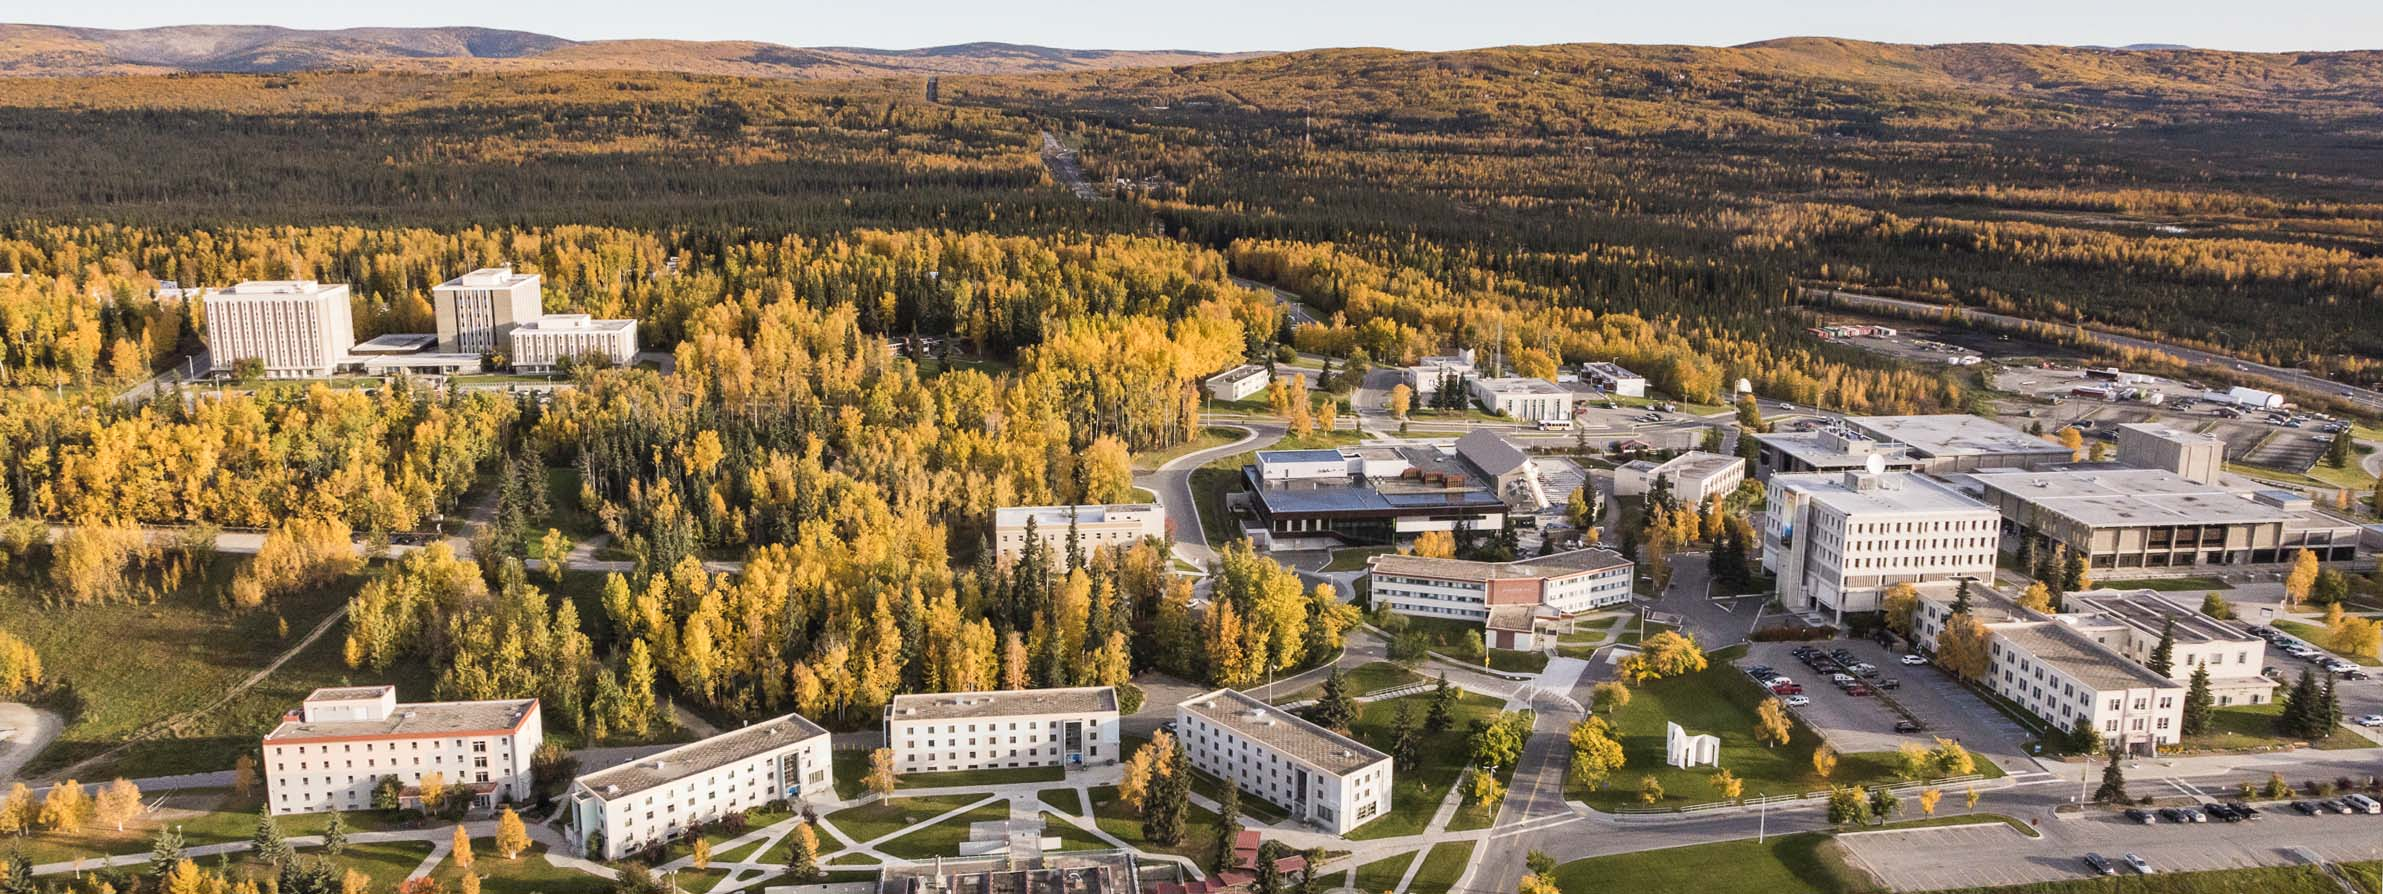 Fall aerial view of the Fairbanks campus